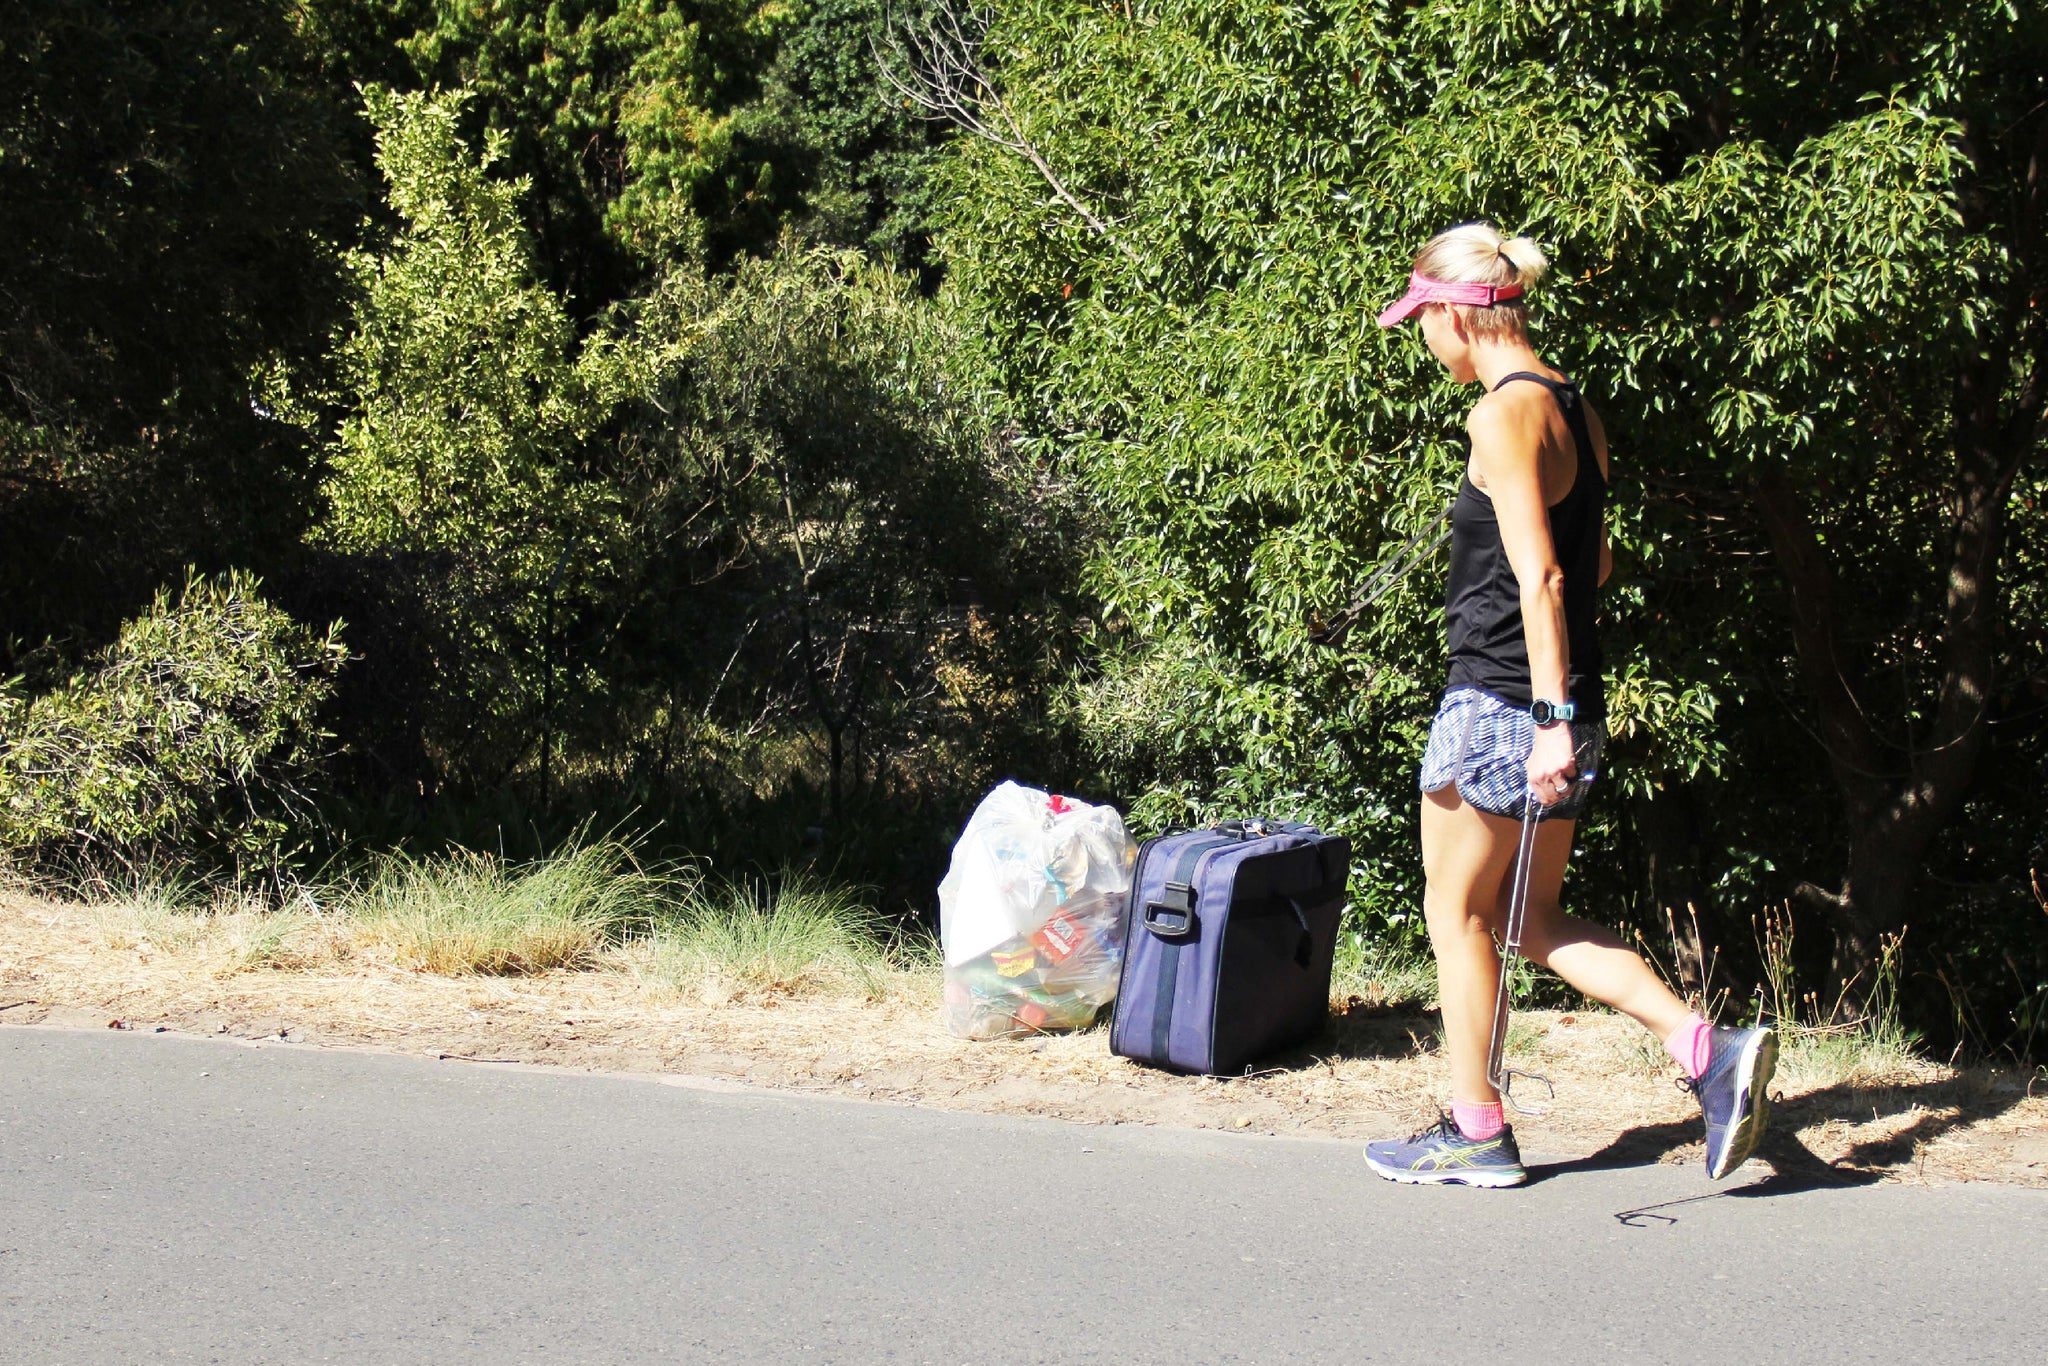 picture Plogging Is the New Workout Trend We Never Saw Coming